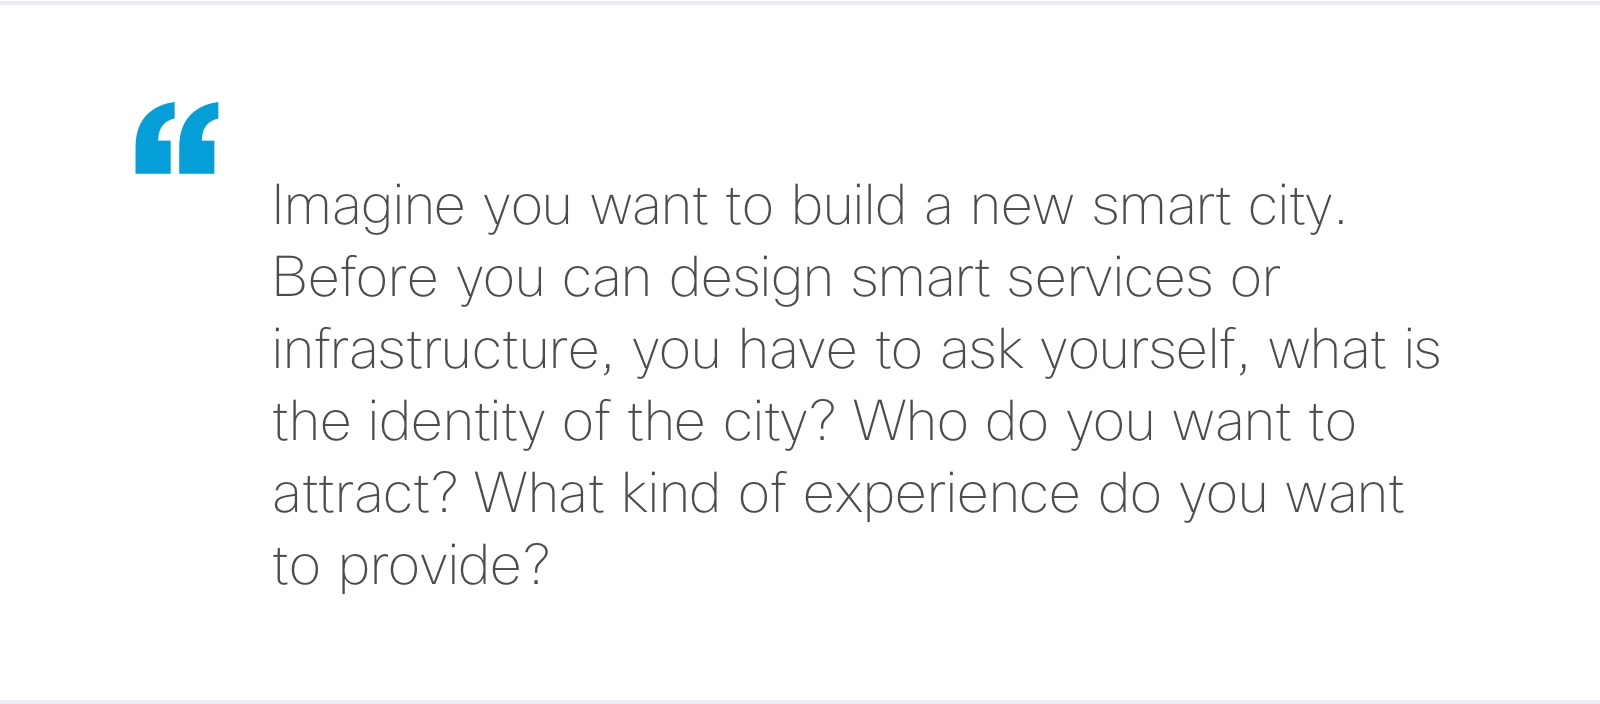 """""""Imagine you want to build a new smart city. Before you can design smart services or infrastructure, you have to ask yourself, what is the identity of the city? Who do you want to attract? What kind of experience do you want to provide?"""""""